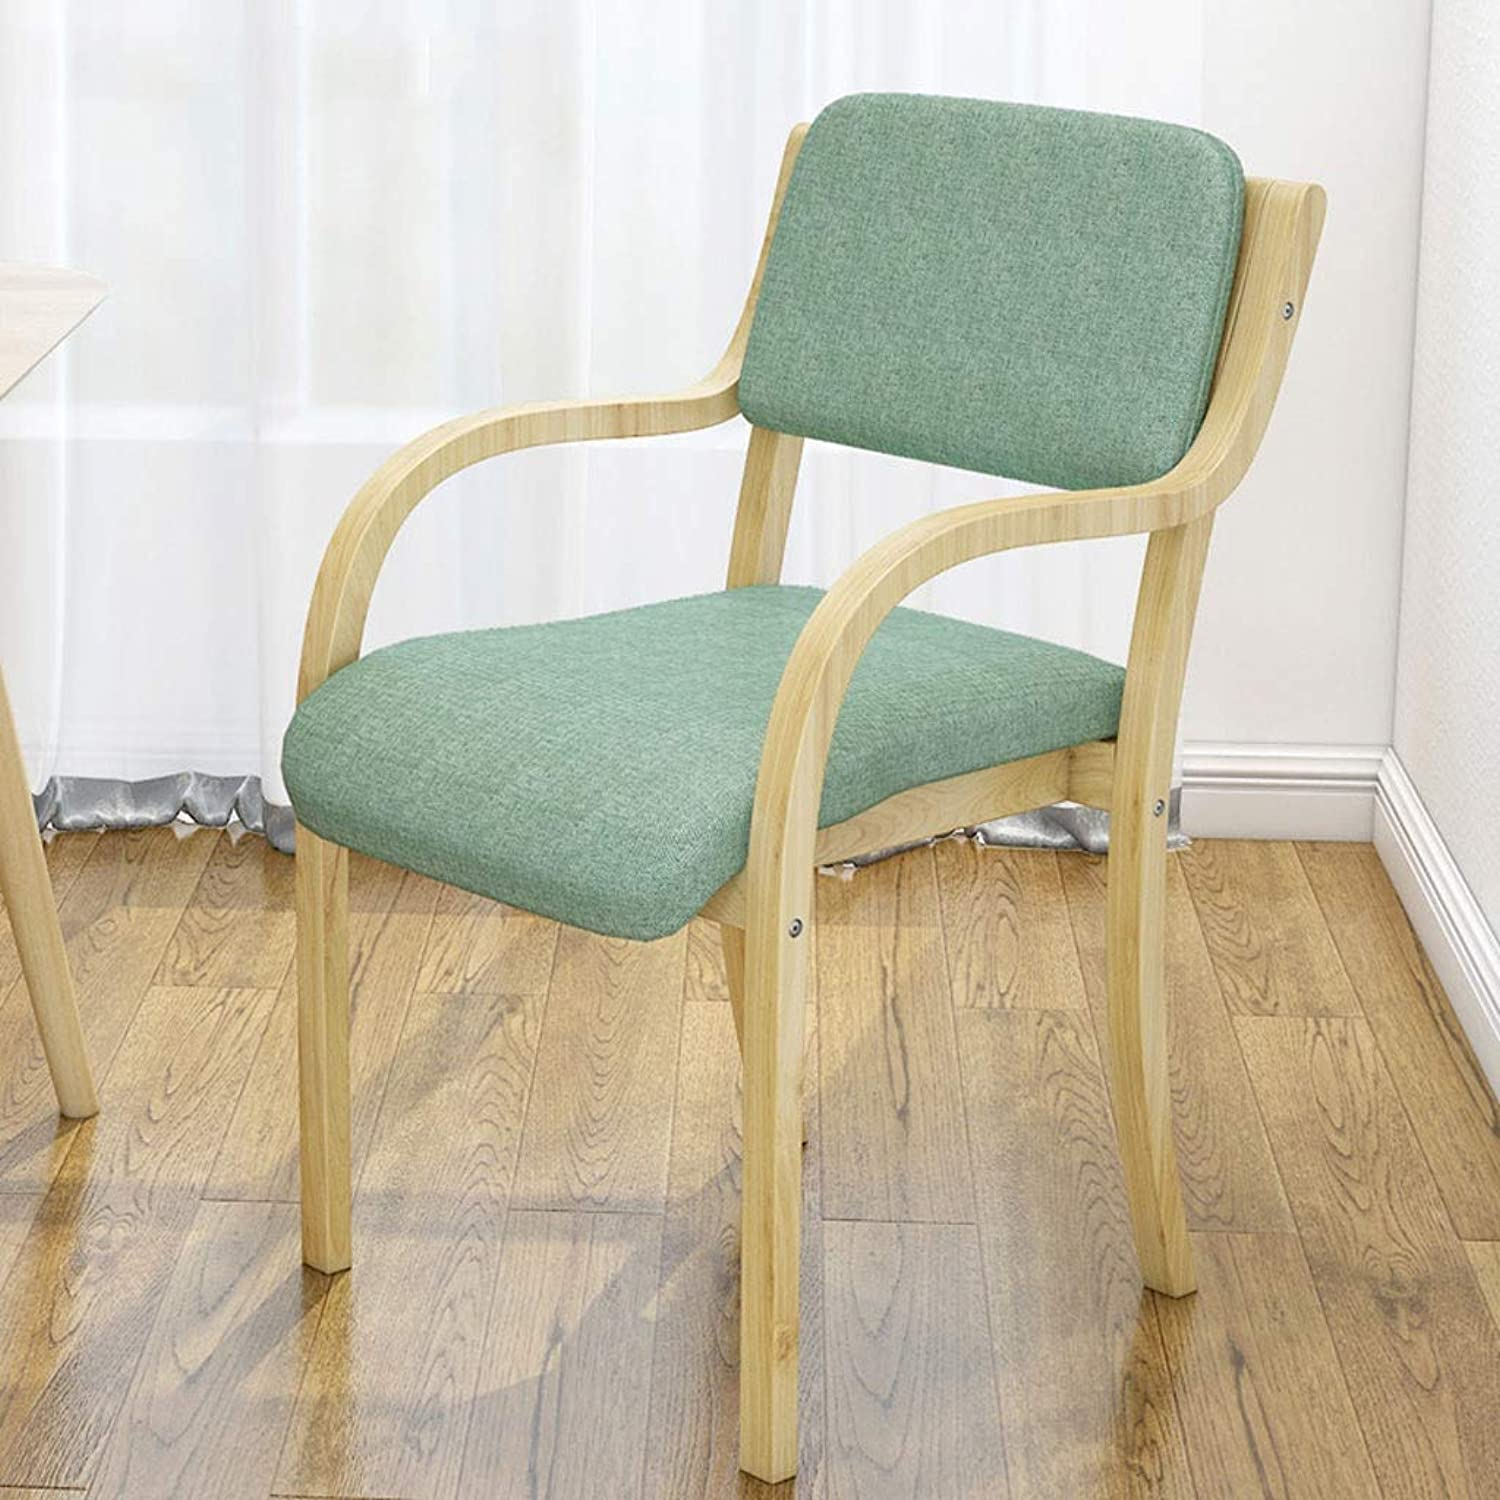 A+ Solid Wood Dining Chair with Backrest, High Resilience Sponge Filled Simple Chair, Fabric Seat- Size  53cm X 48cmX65cm (color   bluee)